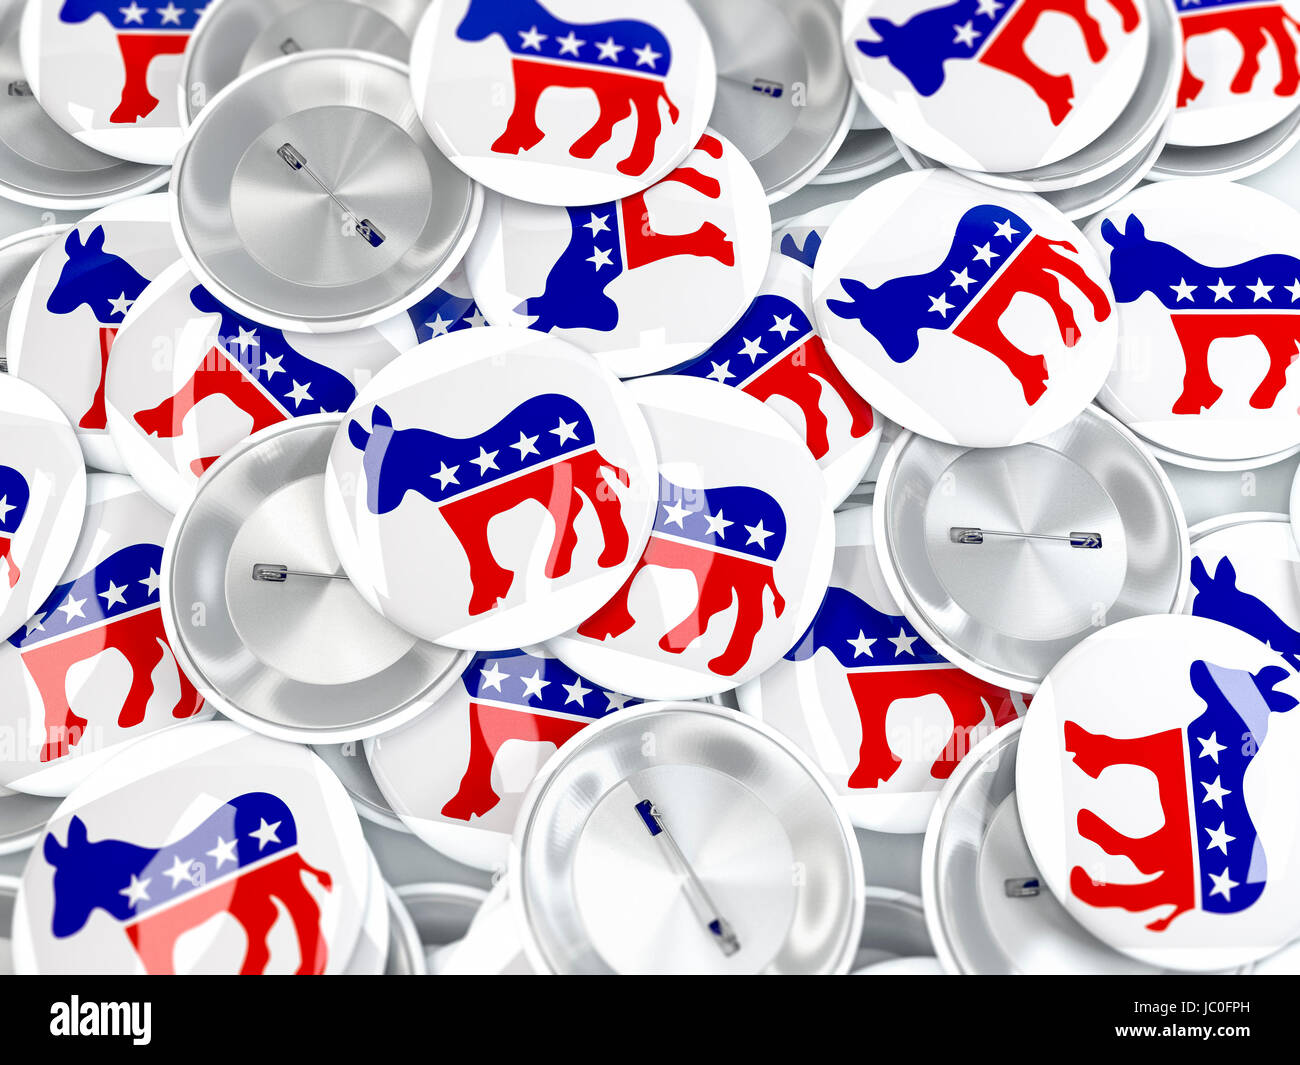 Pile Of Button Badges With Donkey Symbol Of Us Democratic Party